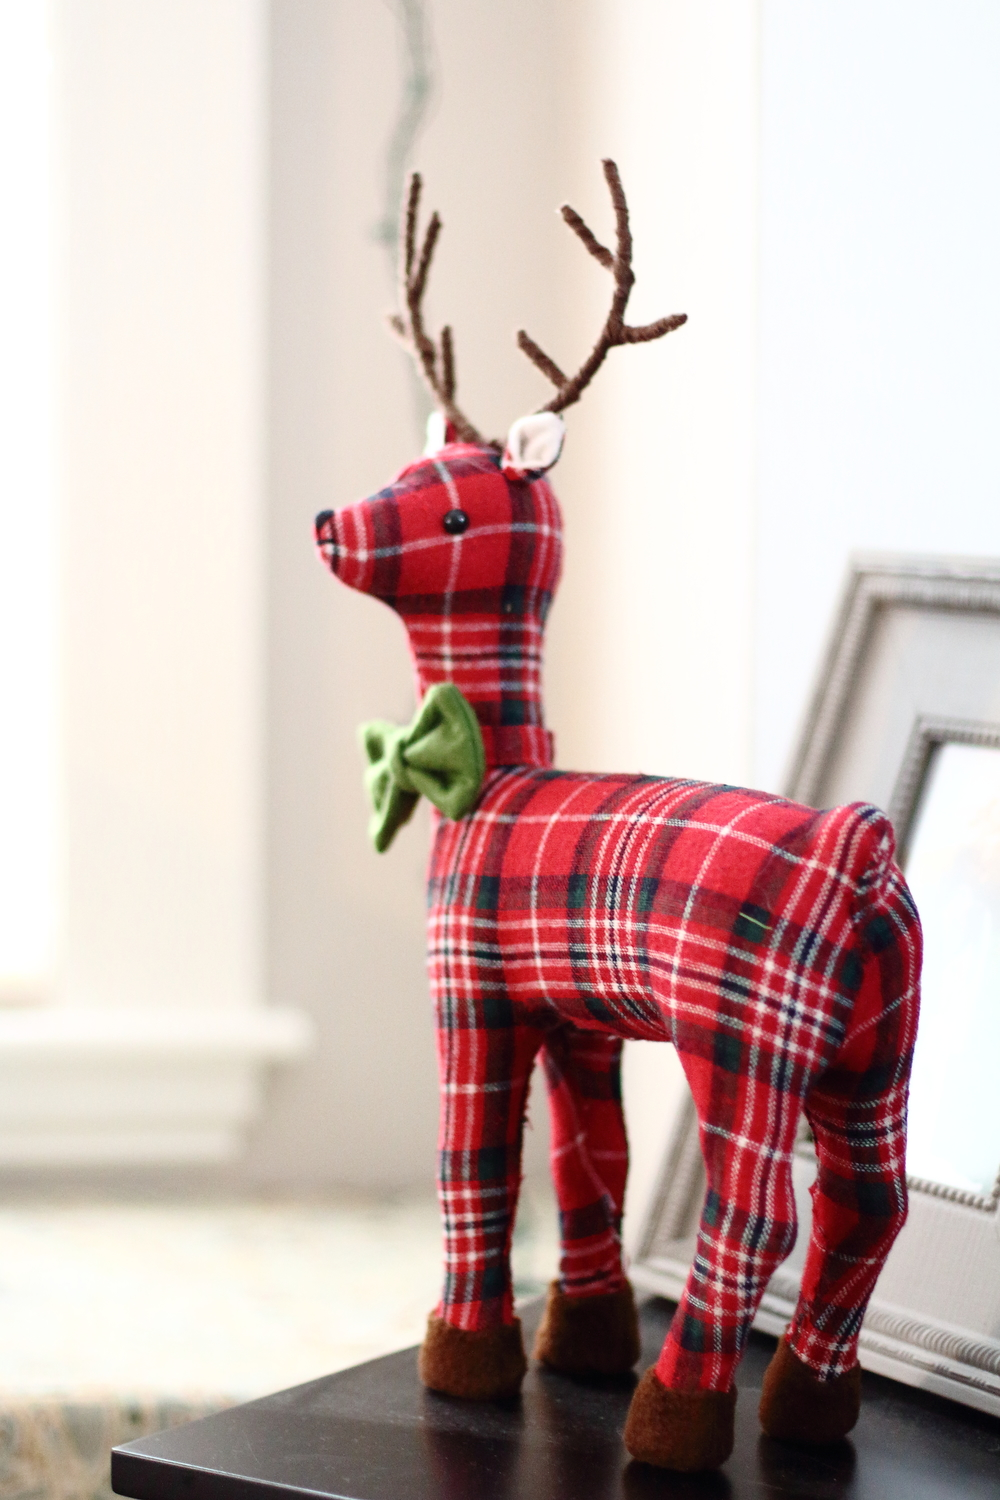 How cute (and festive) is this little guy?! A plaid reindeer with a green bow tie! Don't hesitate from buying those seemingly unnecessary decorations you stumble upon!